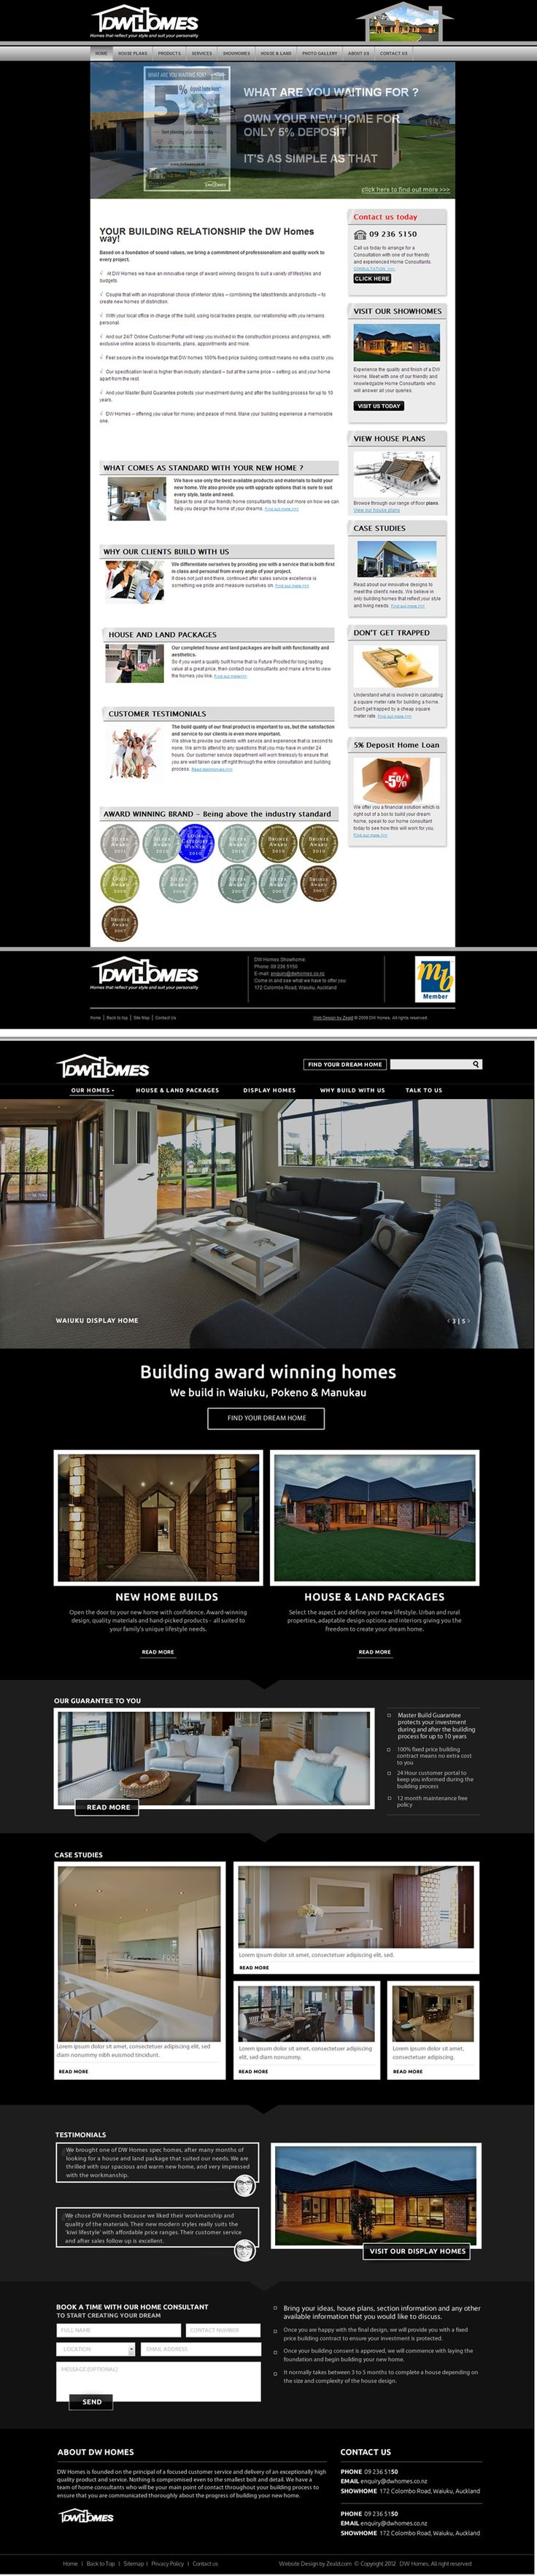 DW Homes website redesign